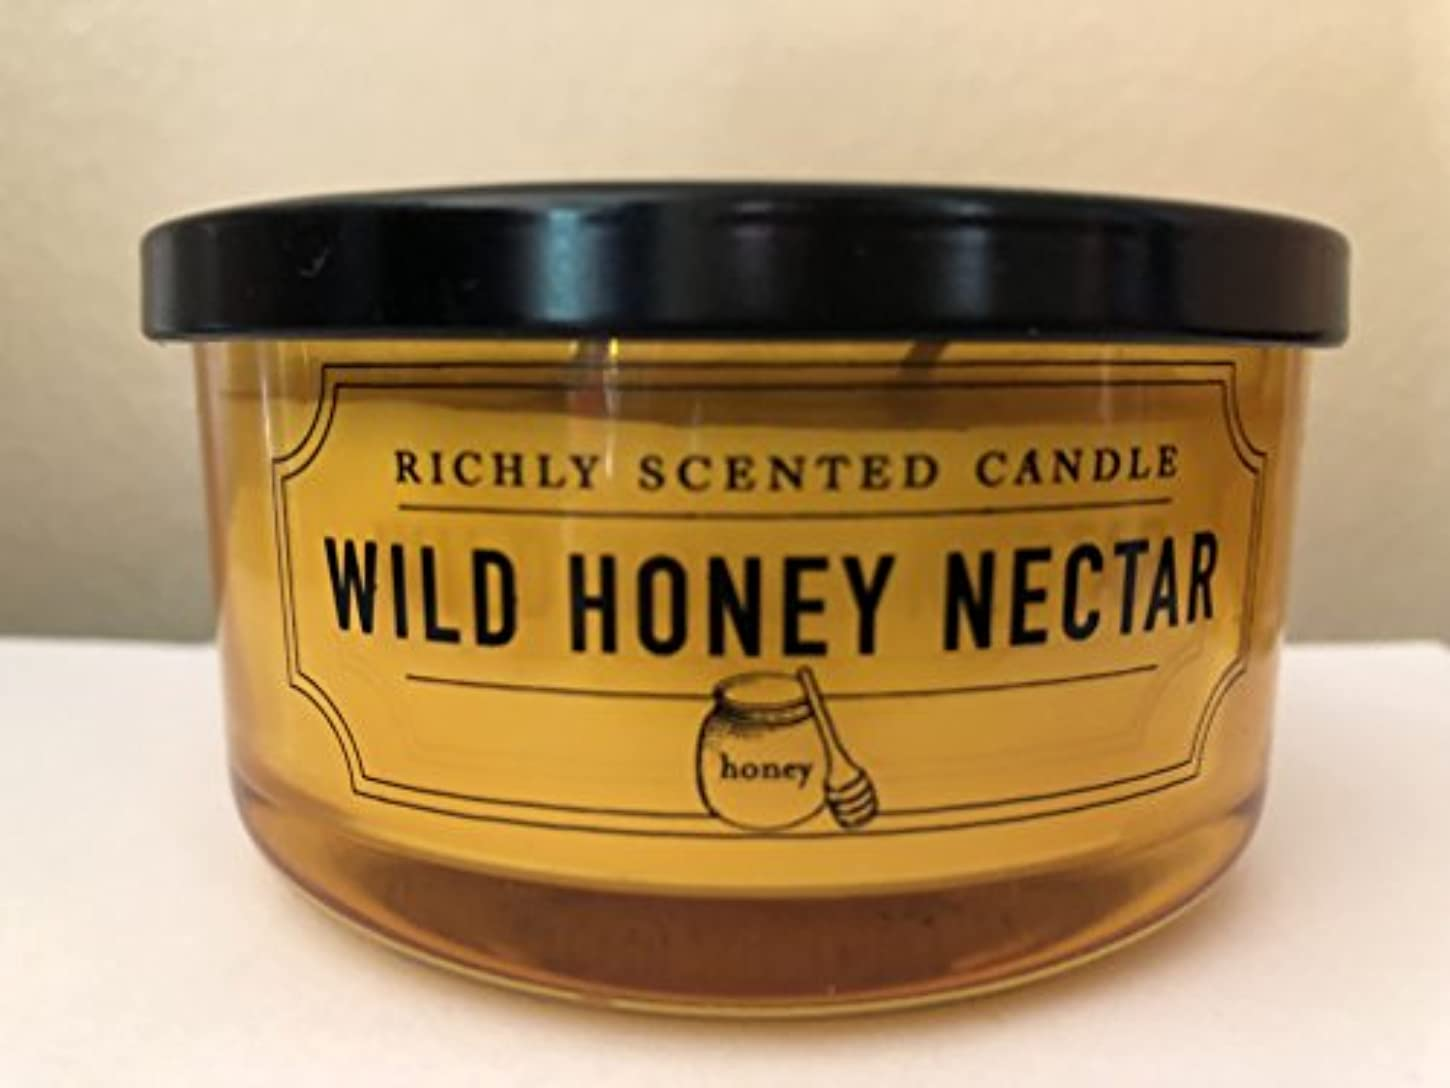 単なる宣教師人気DWホームWild Honey Nectar豊かな香りSmall 2 Wick Candle 4.65oz